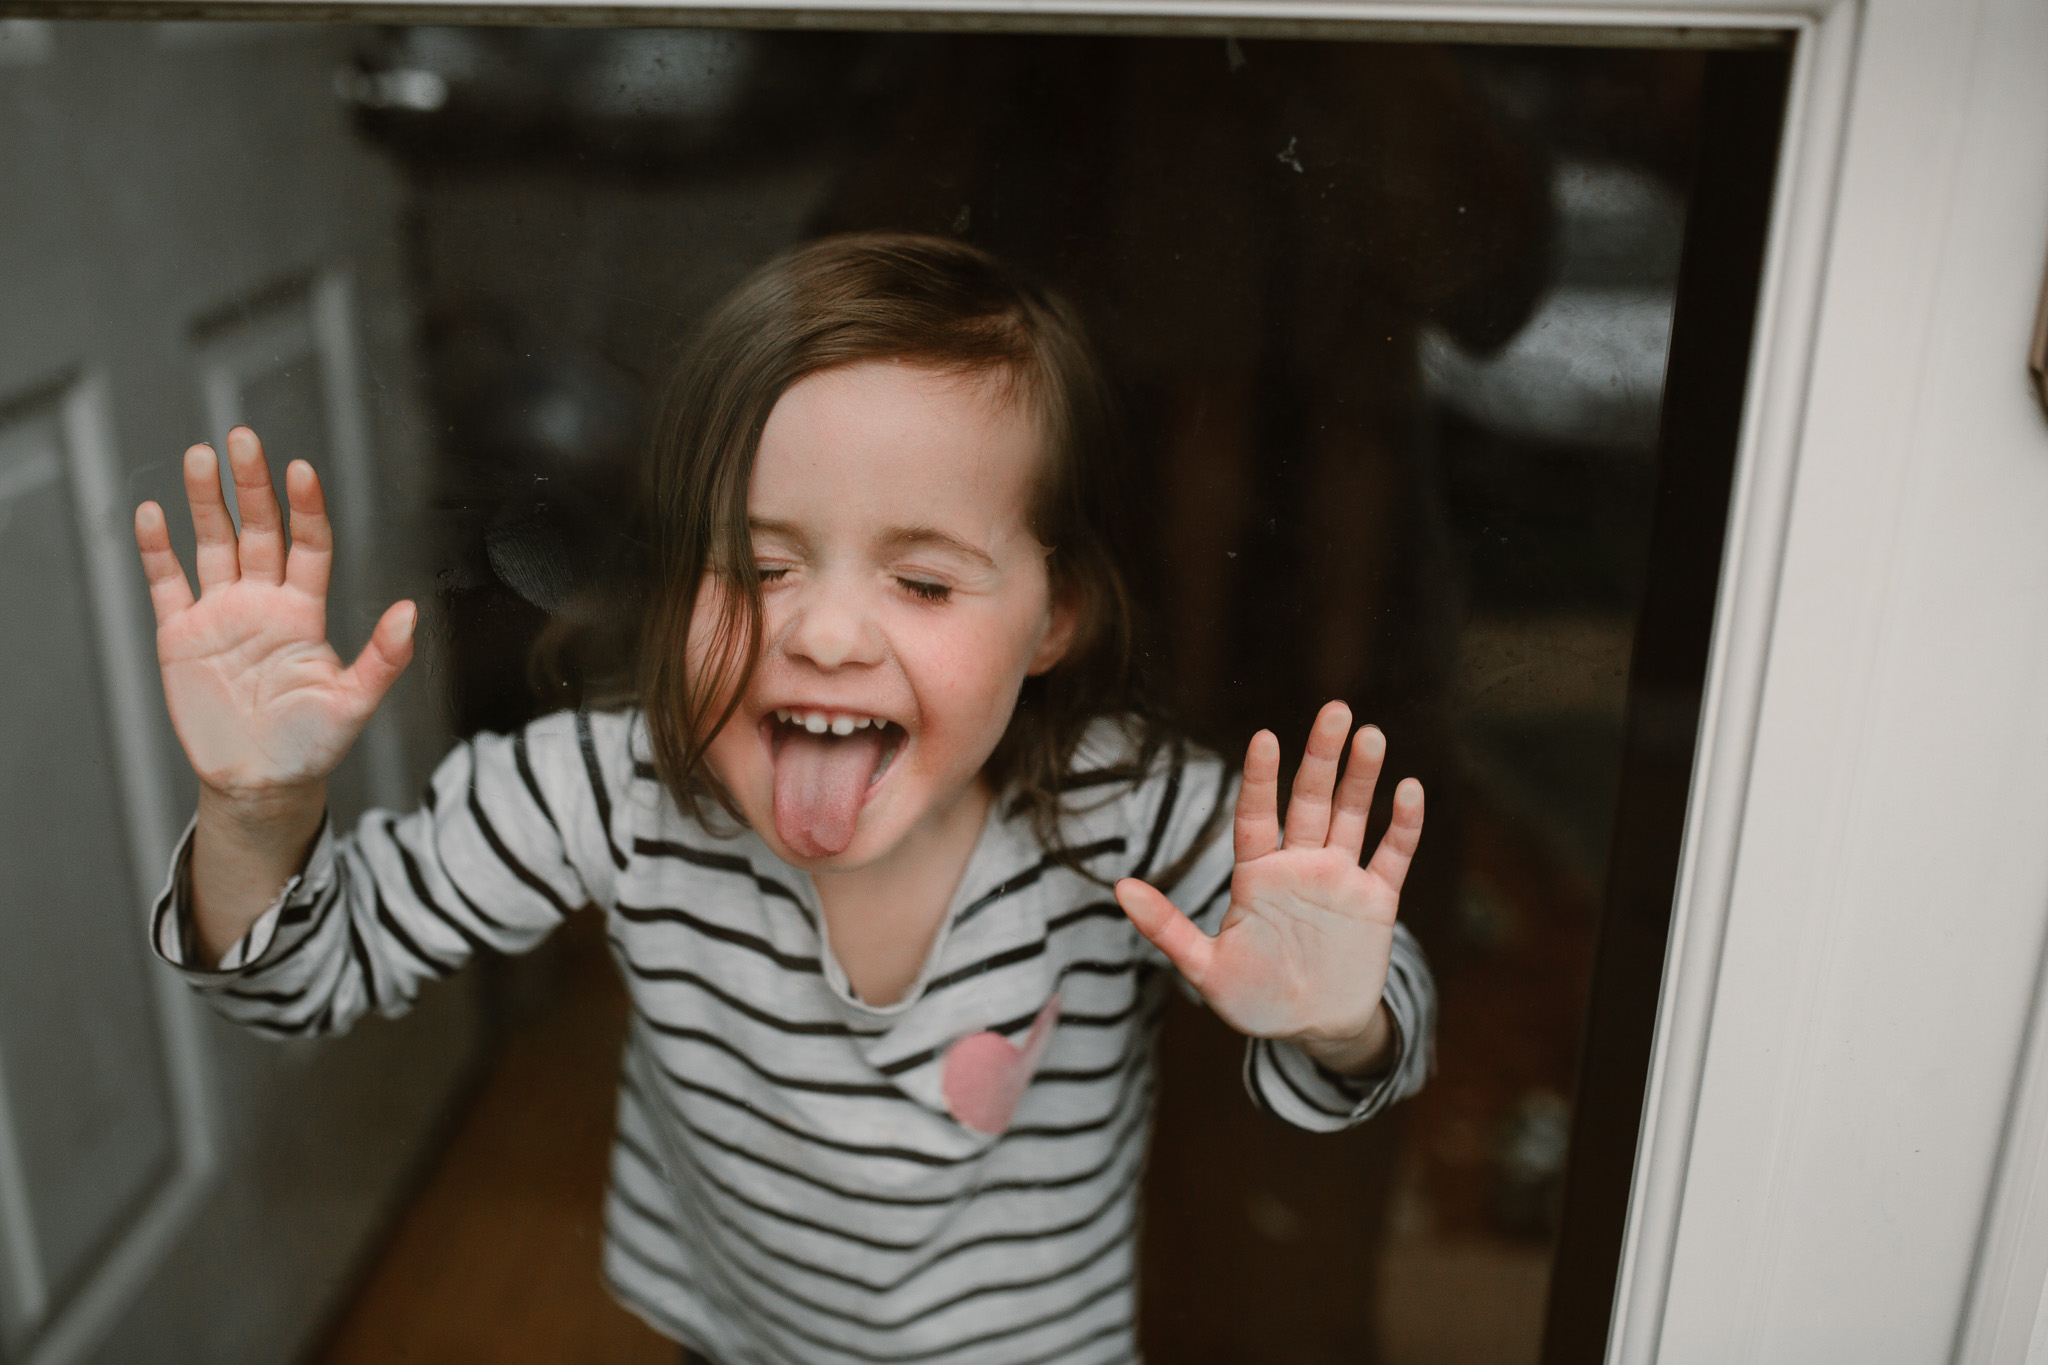 Girl in a striped shirt leans against a glass door and sticks her tongue out